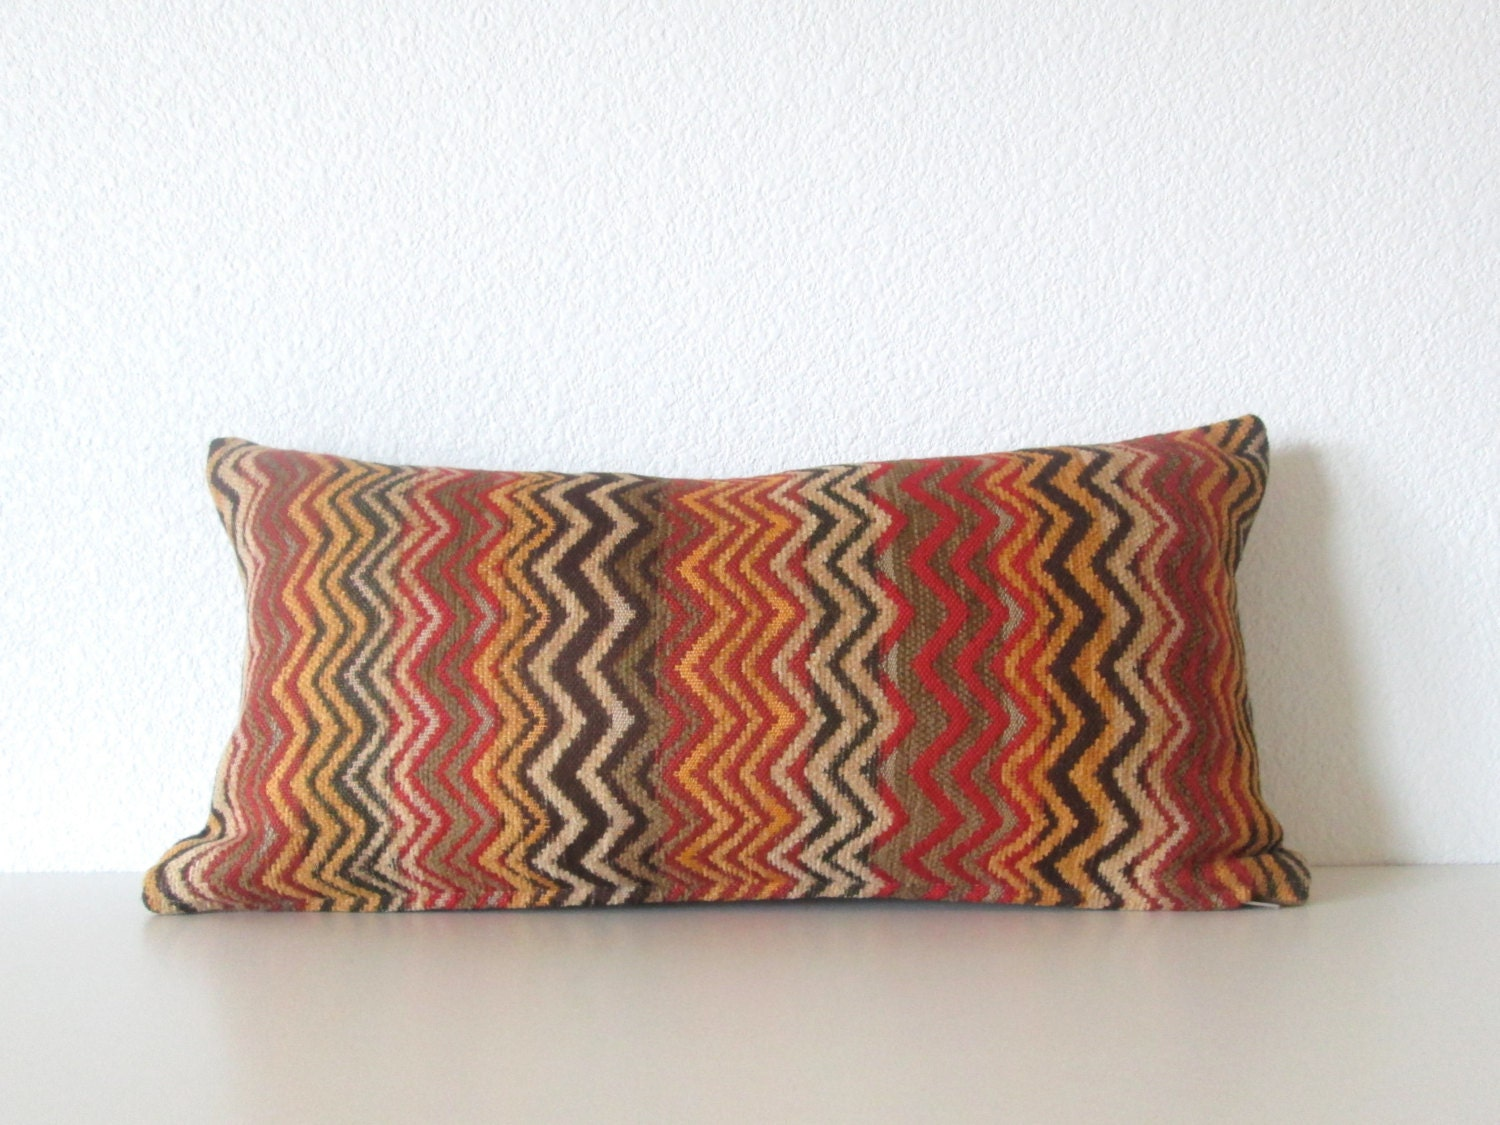 How To Make A Small Decorative Pillow : CraftLaunch Site Inactive